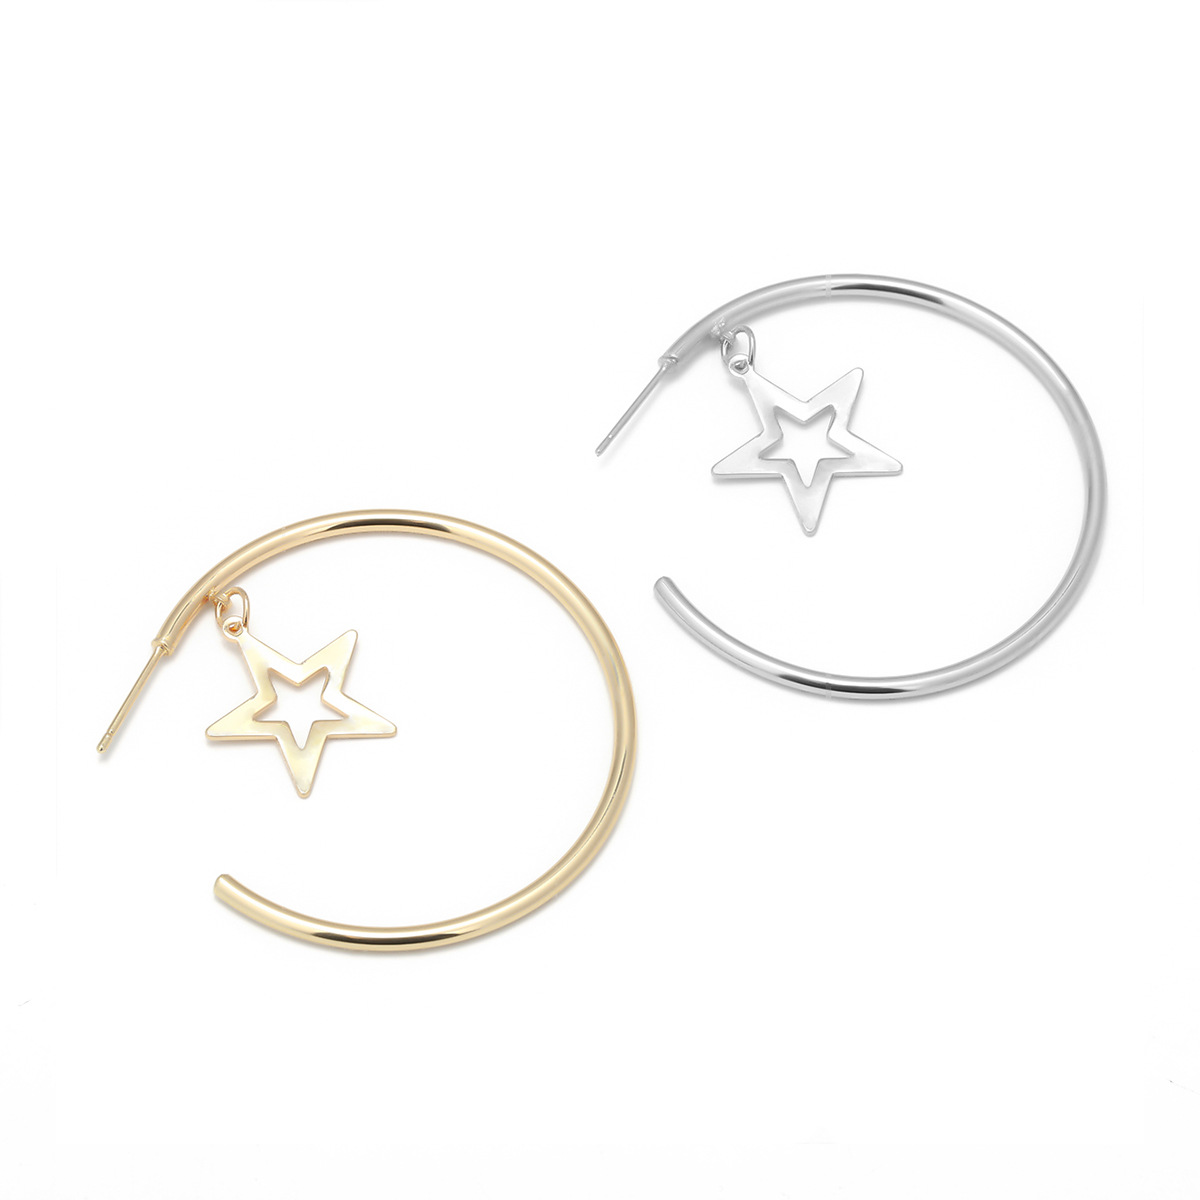 Alloy Simple Geometric earring(Gold 1025) NHXR2246-Gold 1025